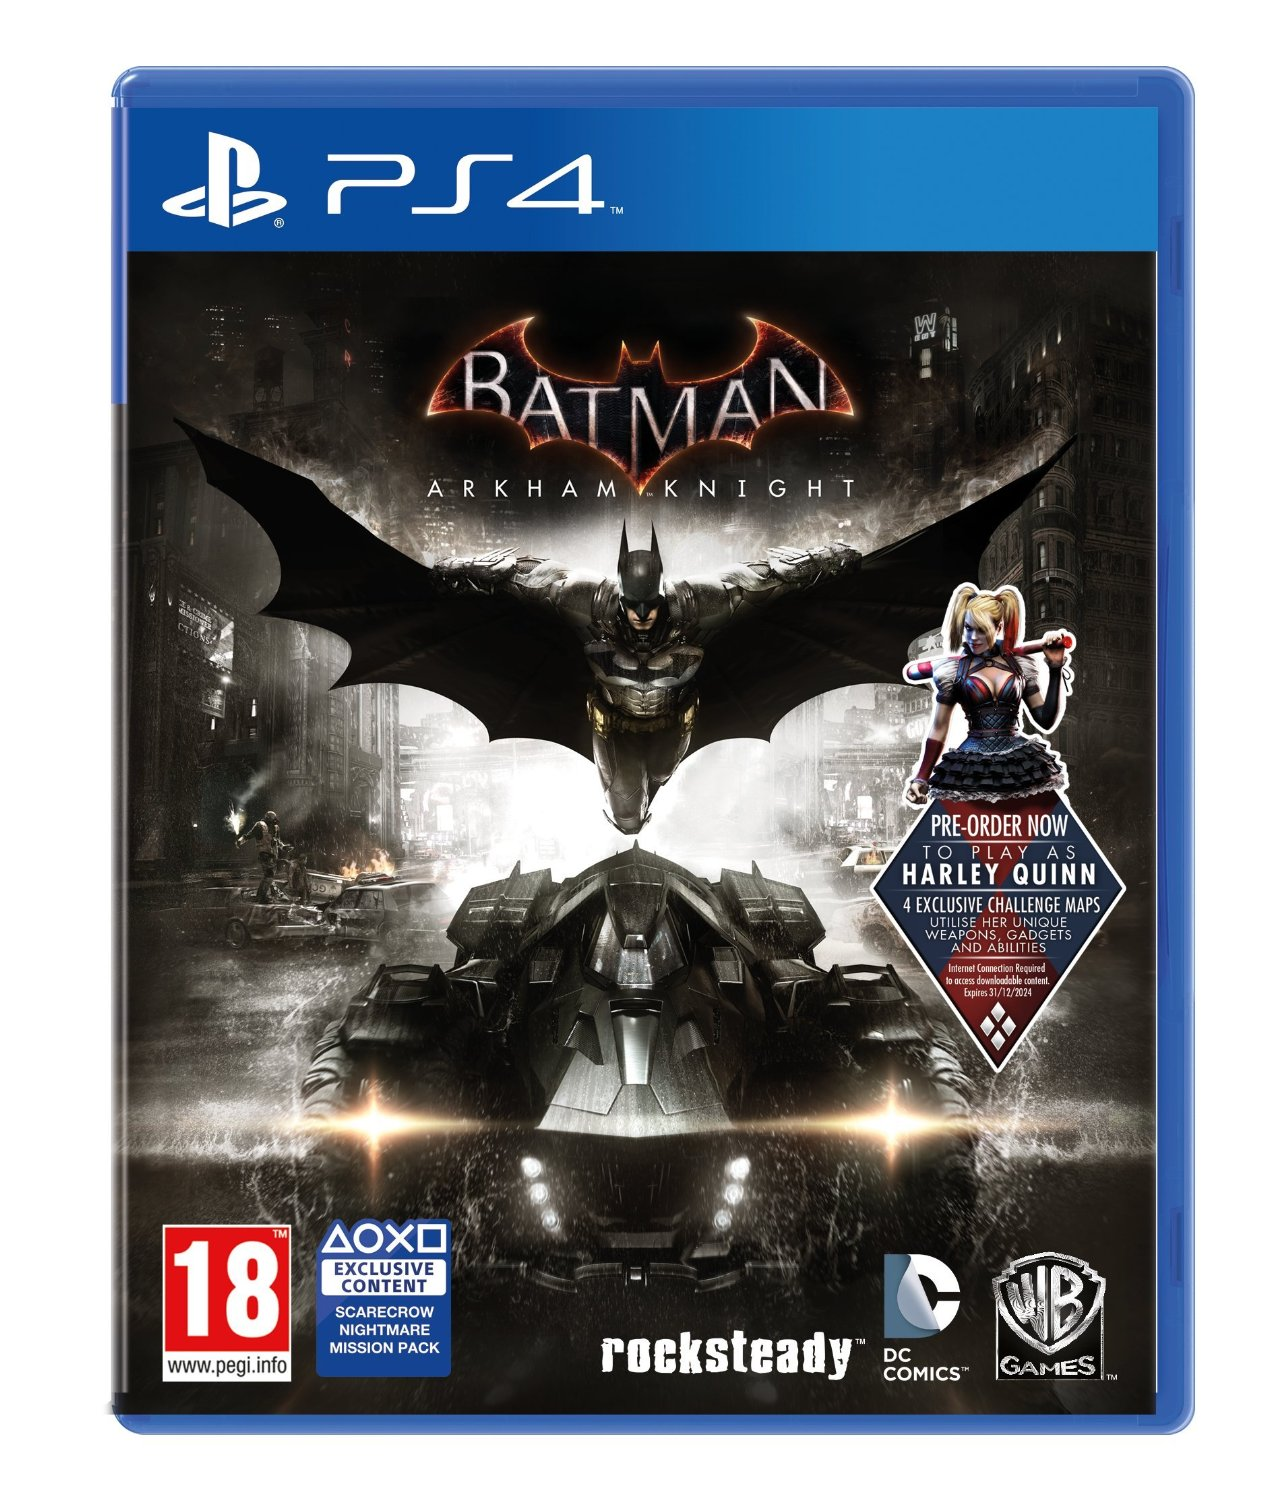 Scifinow The World S Best Science: Batman Arkham Knight Review: Three's A Charm?